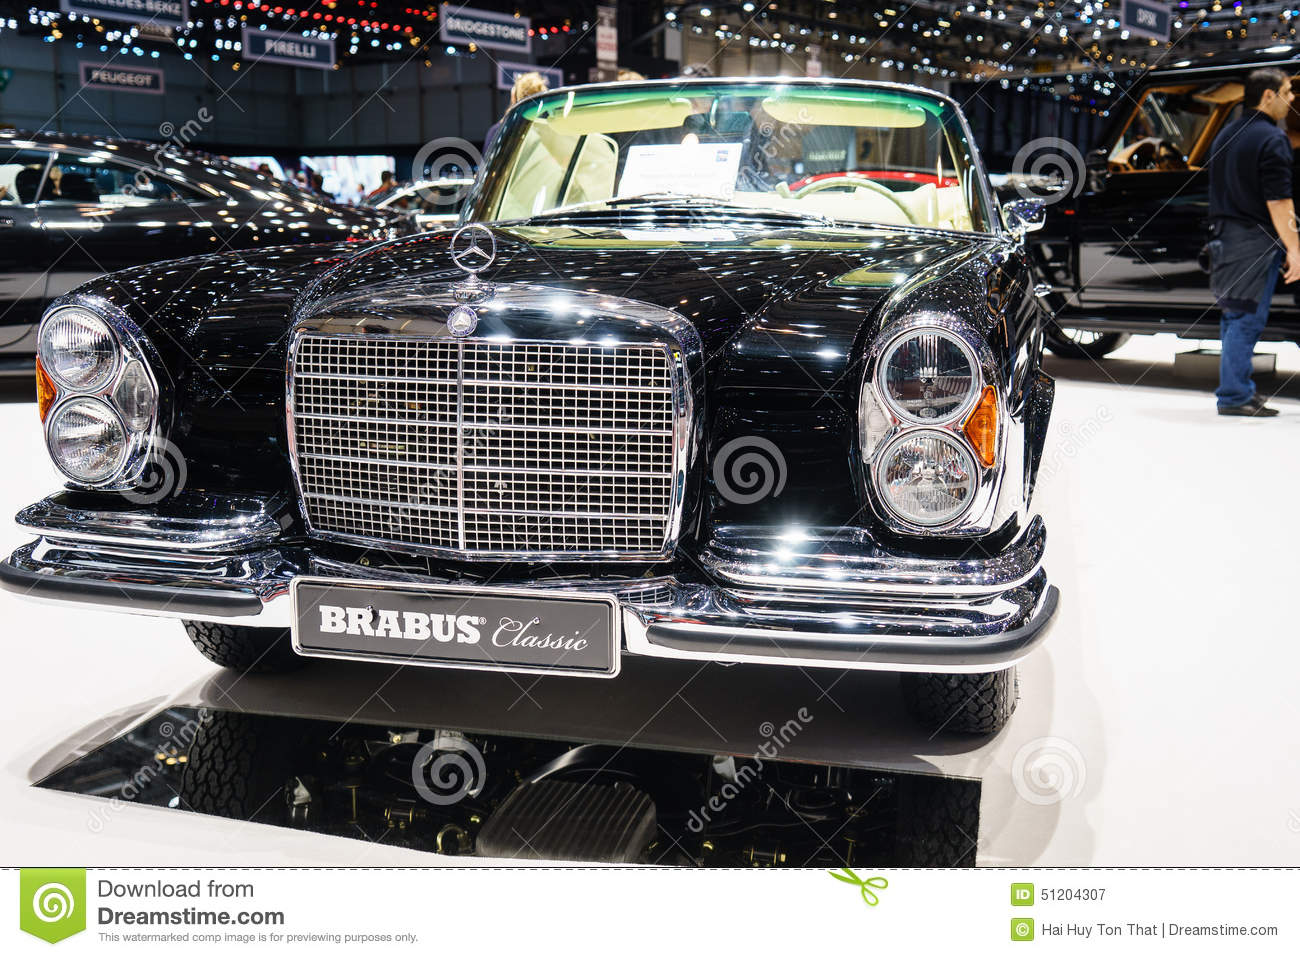 Brabus classic 39 s motor show geneve 2015 editorial for Mercedes benz us international